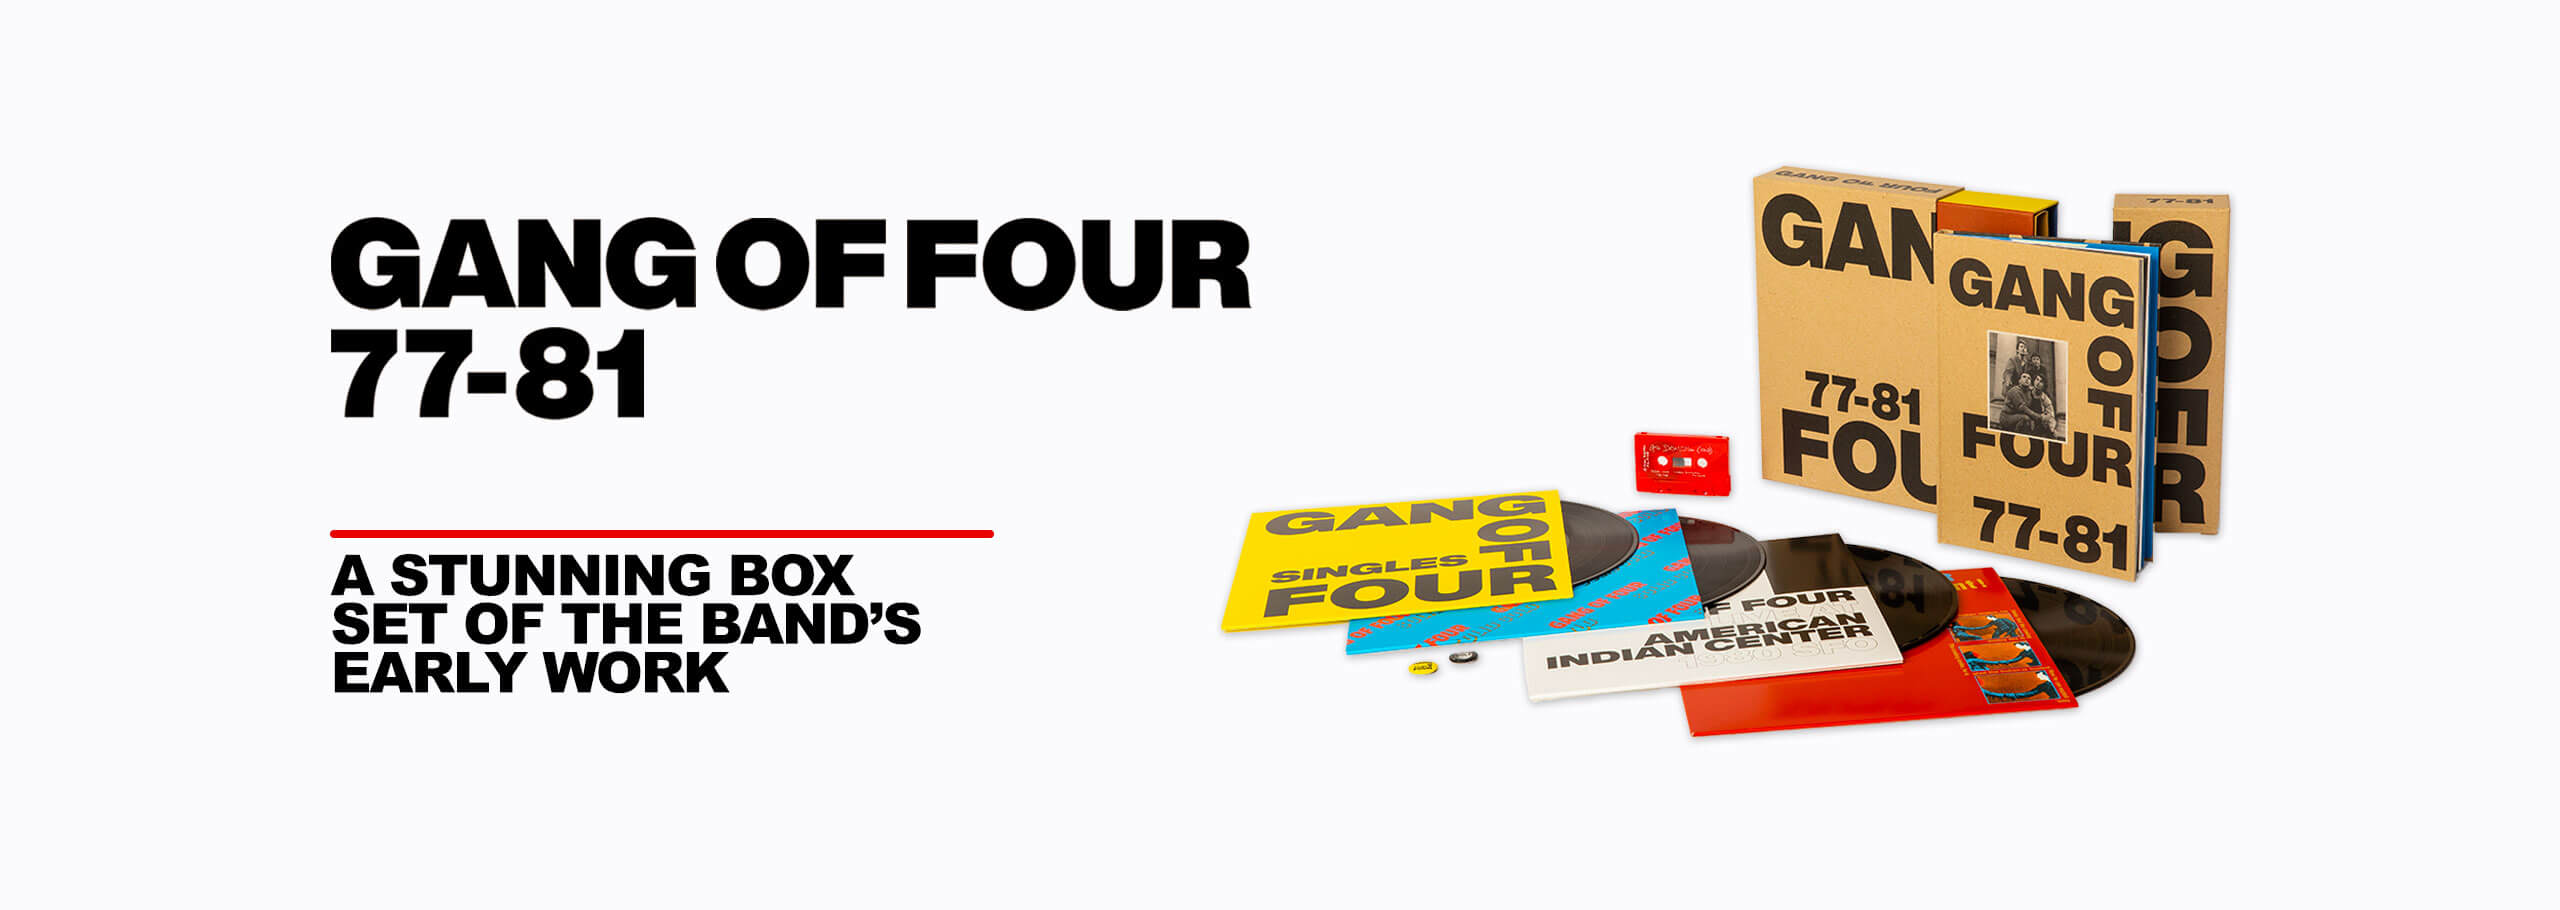 Gang Of Four 77-81 - A stunning boxset of the band's early work.